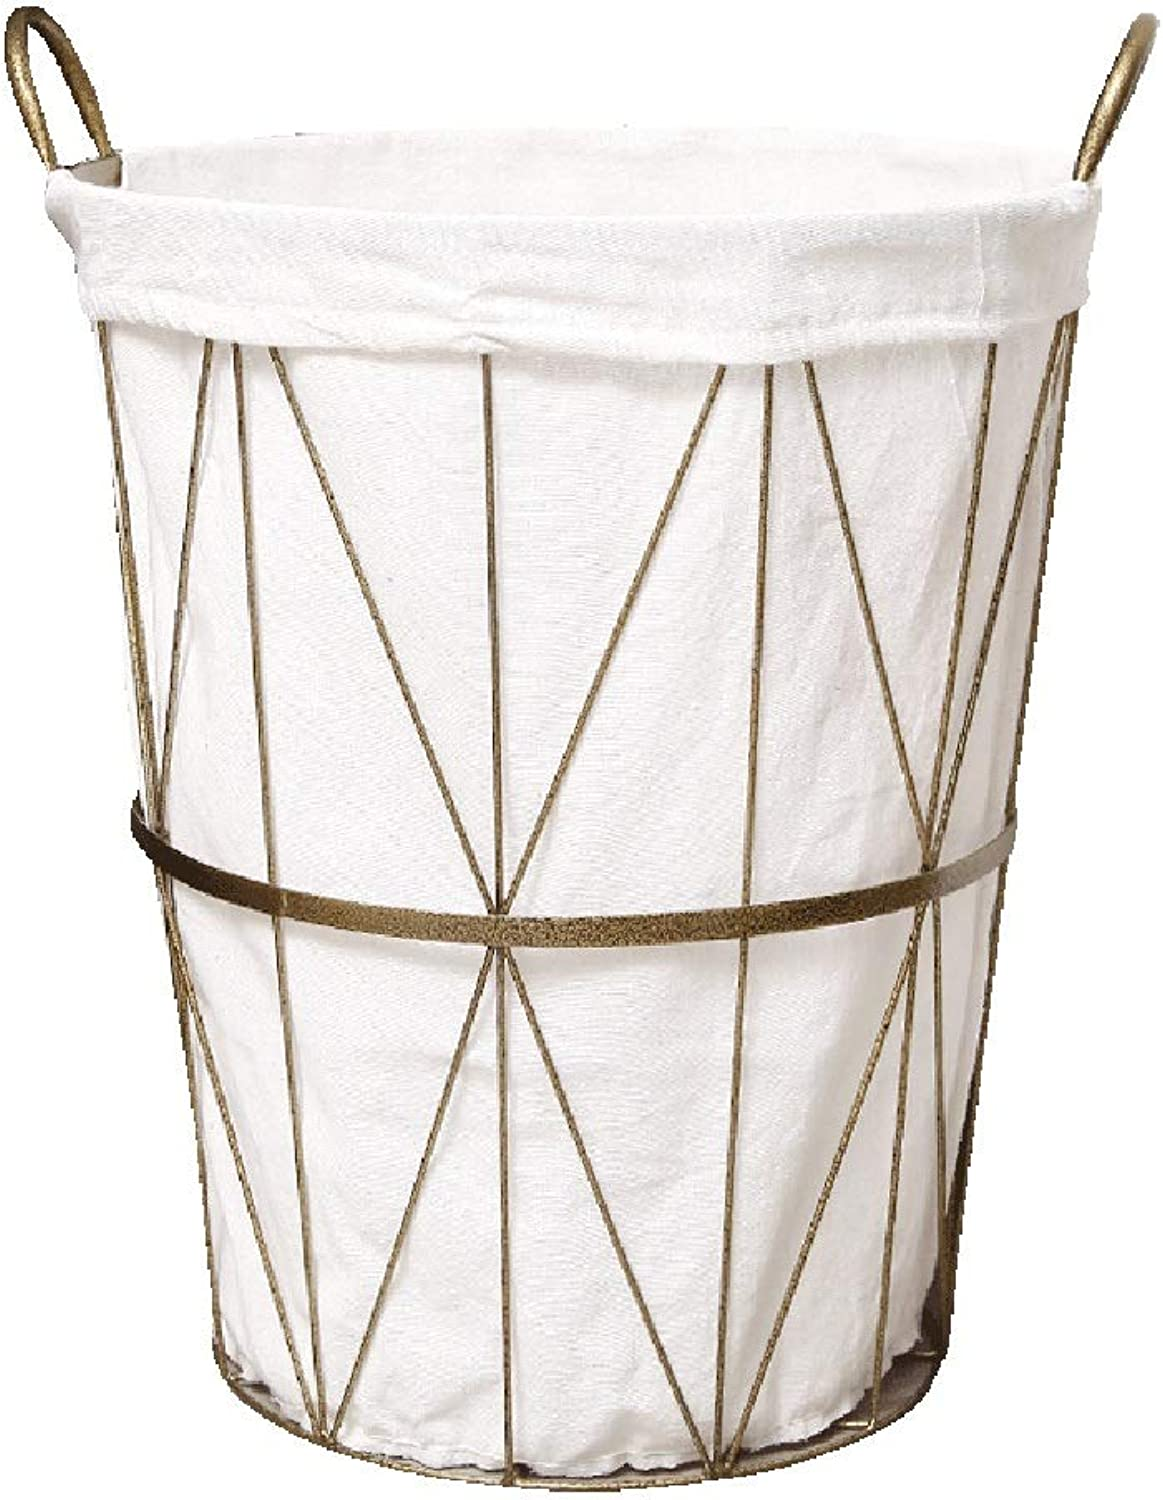 ZHANGQIANG Storage Basket Laundry Basket Iron Hamper Extra Large Nordic Style Metal Storage Basket with Wheels Bathroom Storage Barrel Industrial Wind (color   White, Size   42  60cm)